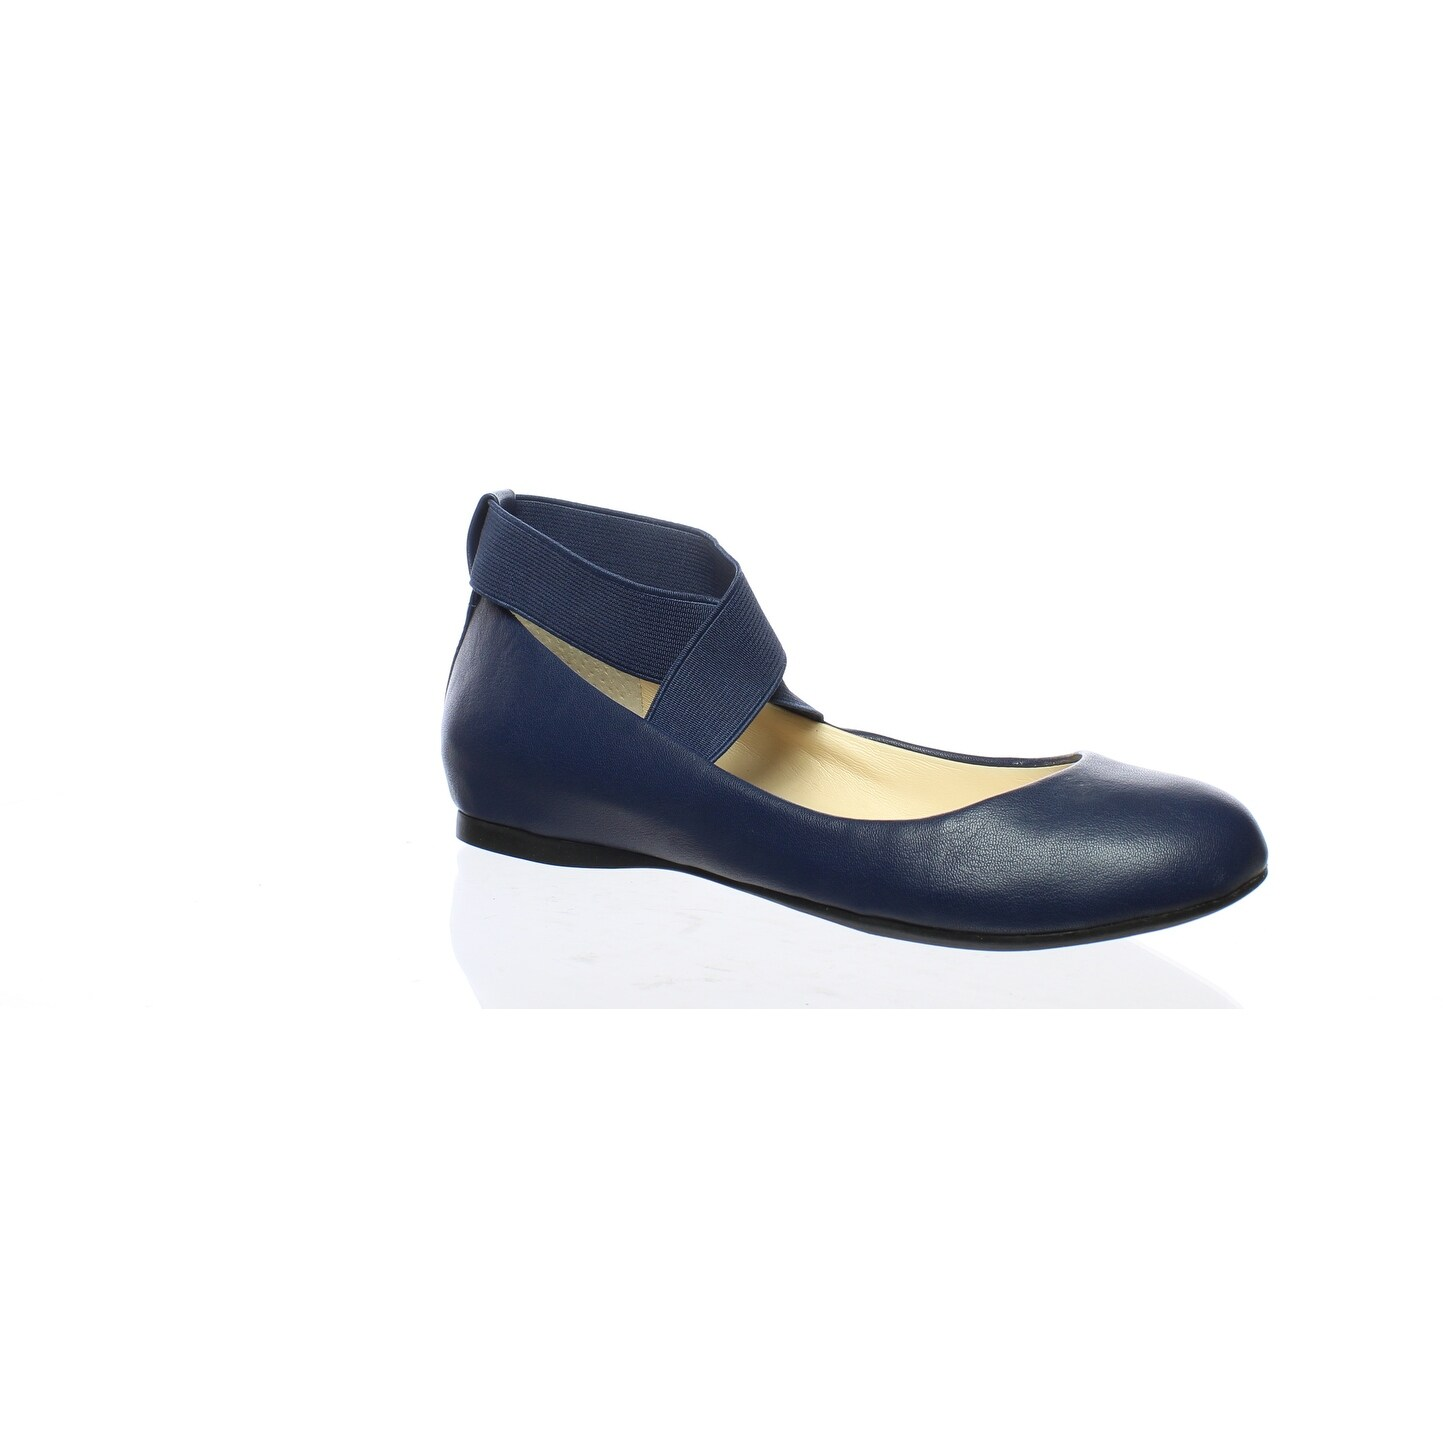 ceca70480 Buy Jessica Simpson Women's Flats Online at Overstock | Our Best Women's  Shoes Deals